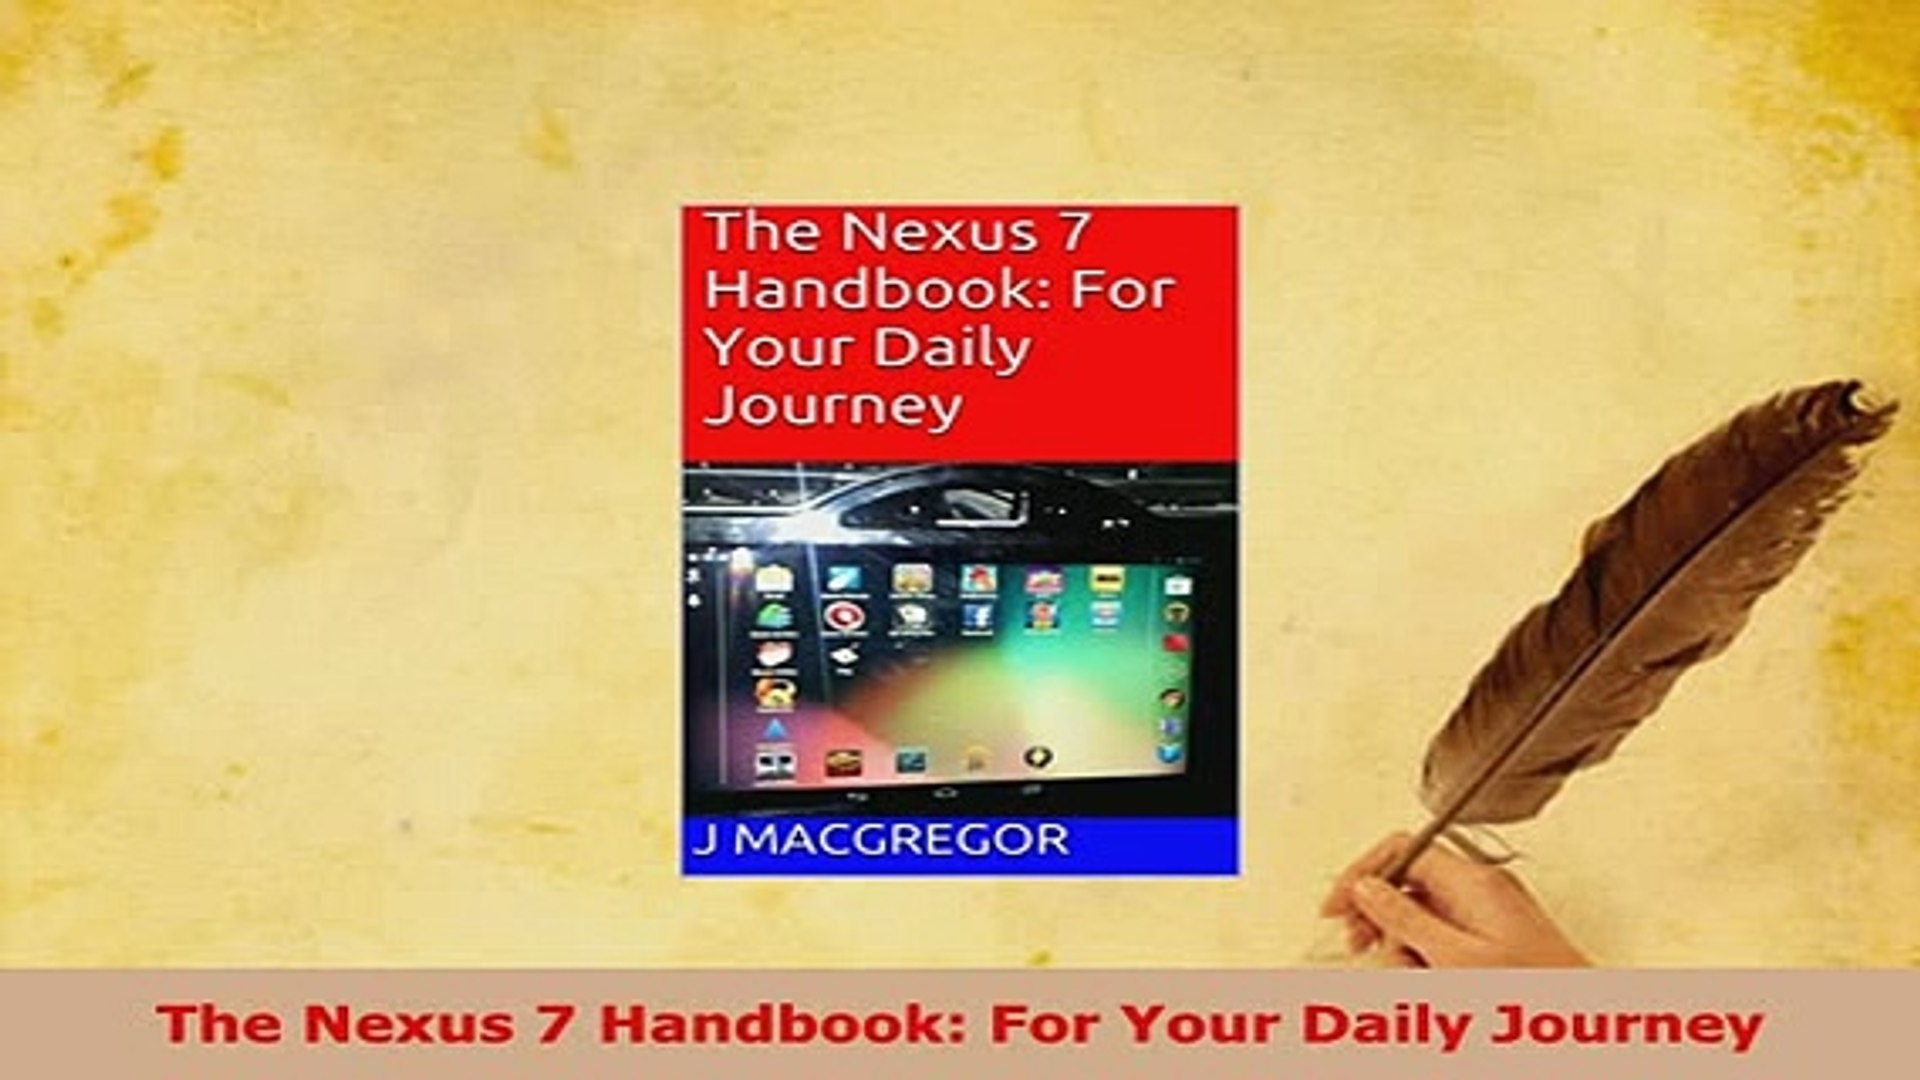 The Nexus 7 Handbook: For Your Daily Journey